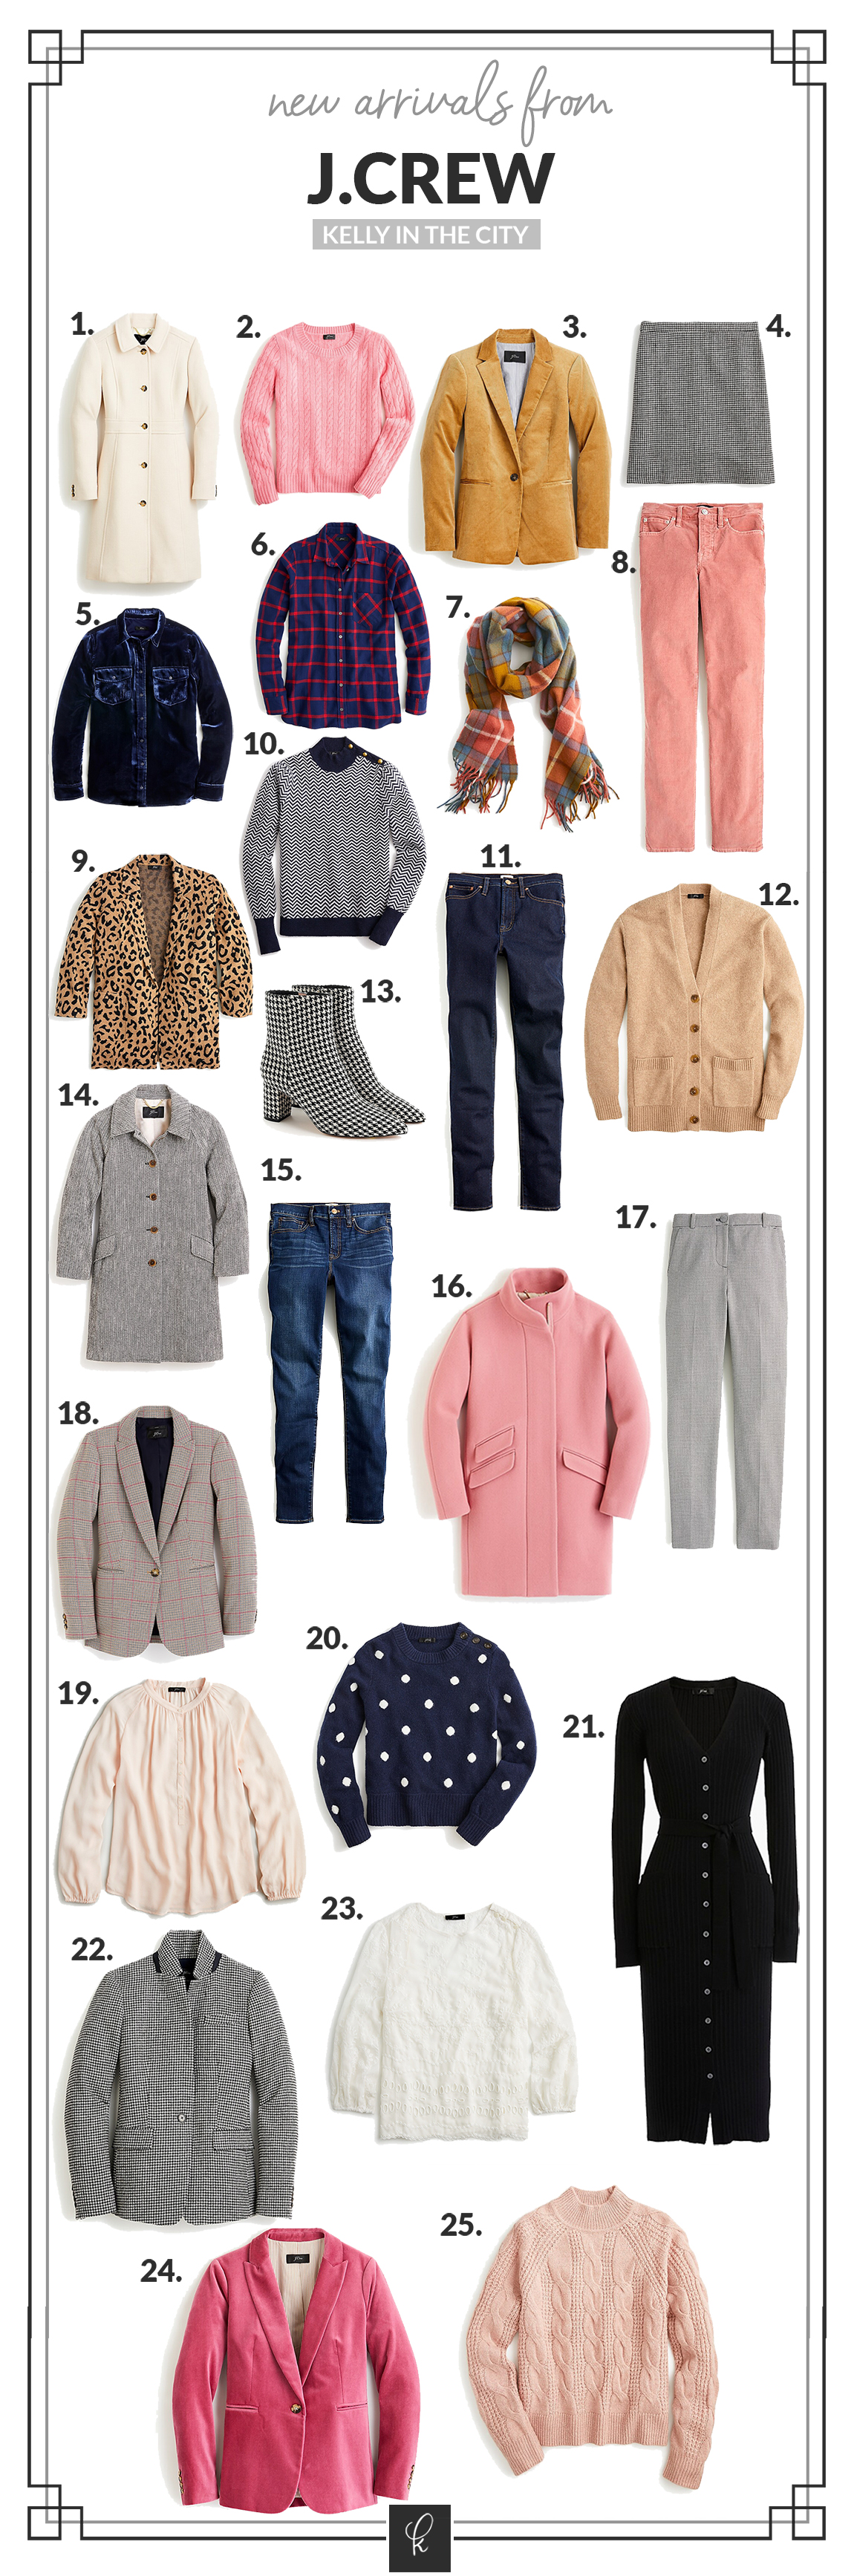 J.Crew Factory new arrival items